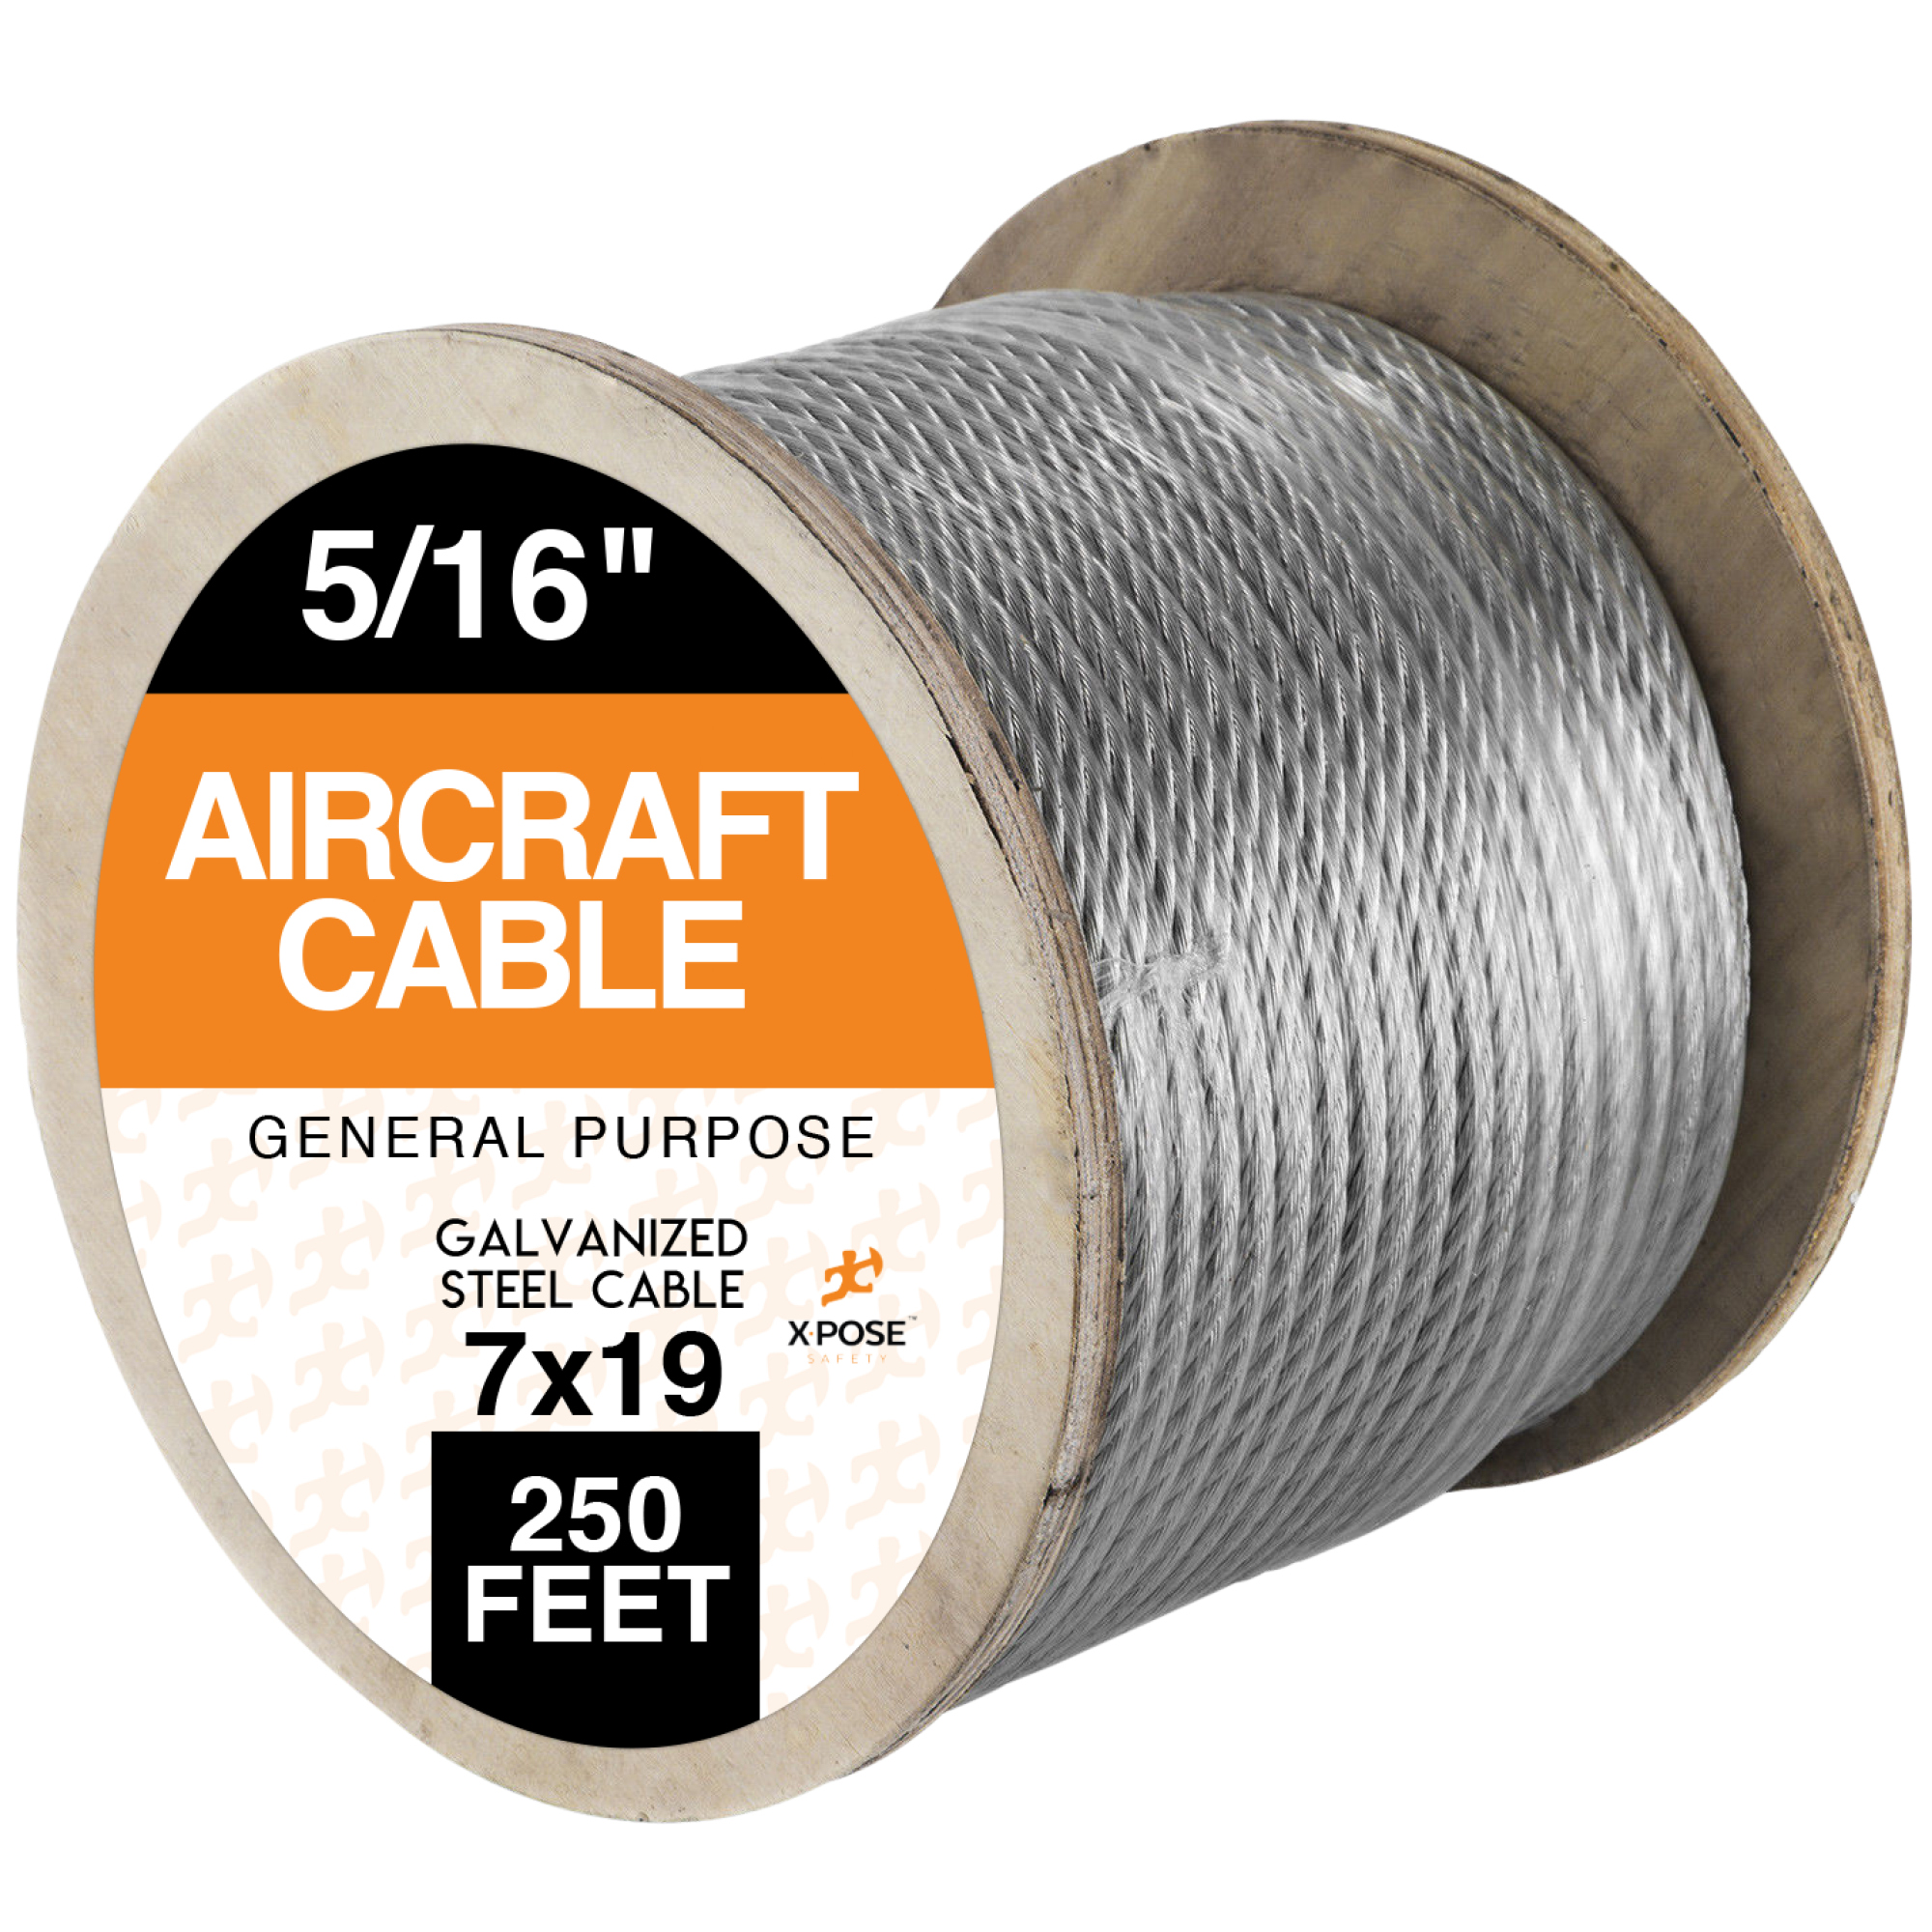 "Galvanized Steel Aircraft Cable Wire 7x19 Strand Core 5/16"" x 250' GWS250-516"